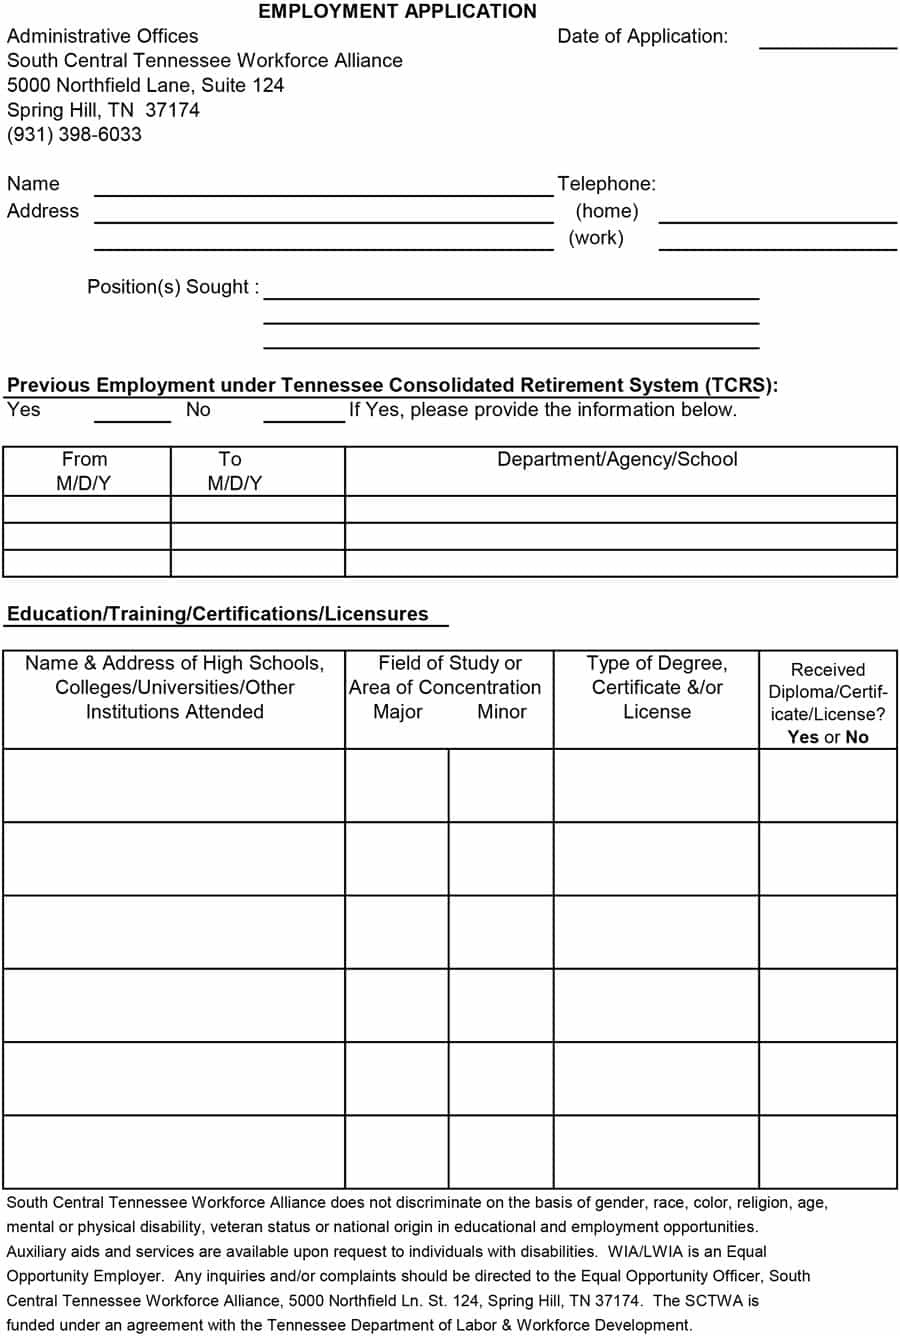 50 Free Employment / Job Application Form Templates [Printable] ᐅ - Free Printable General Application For Employment